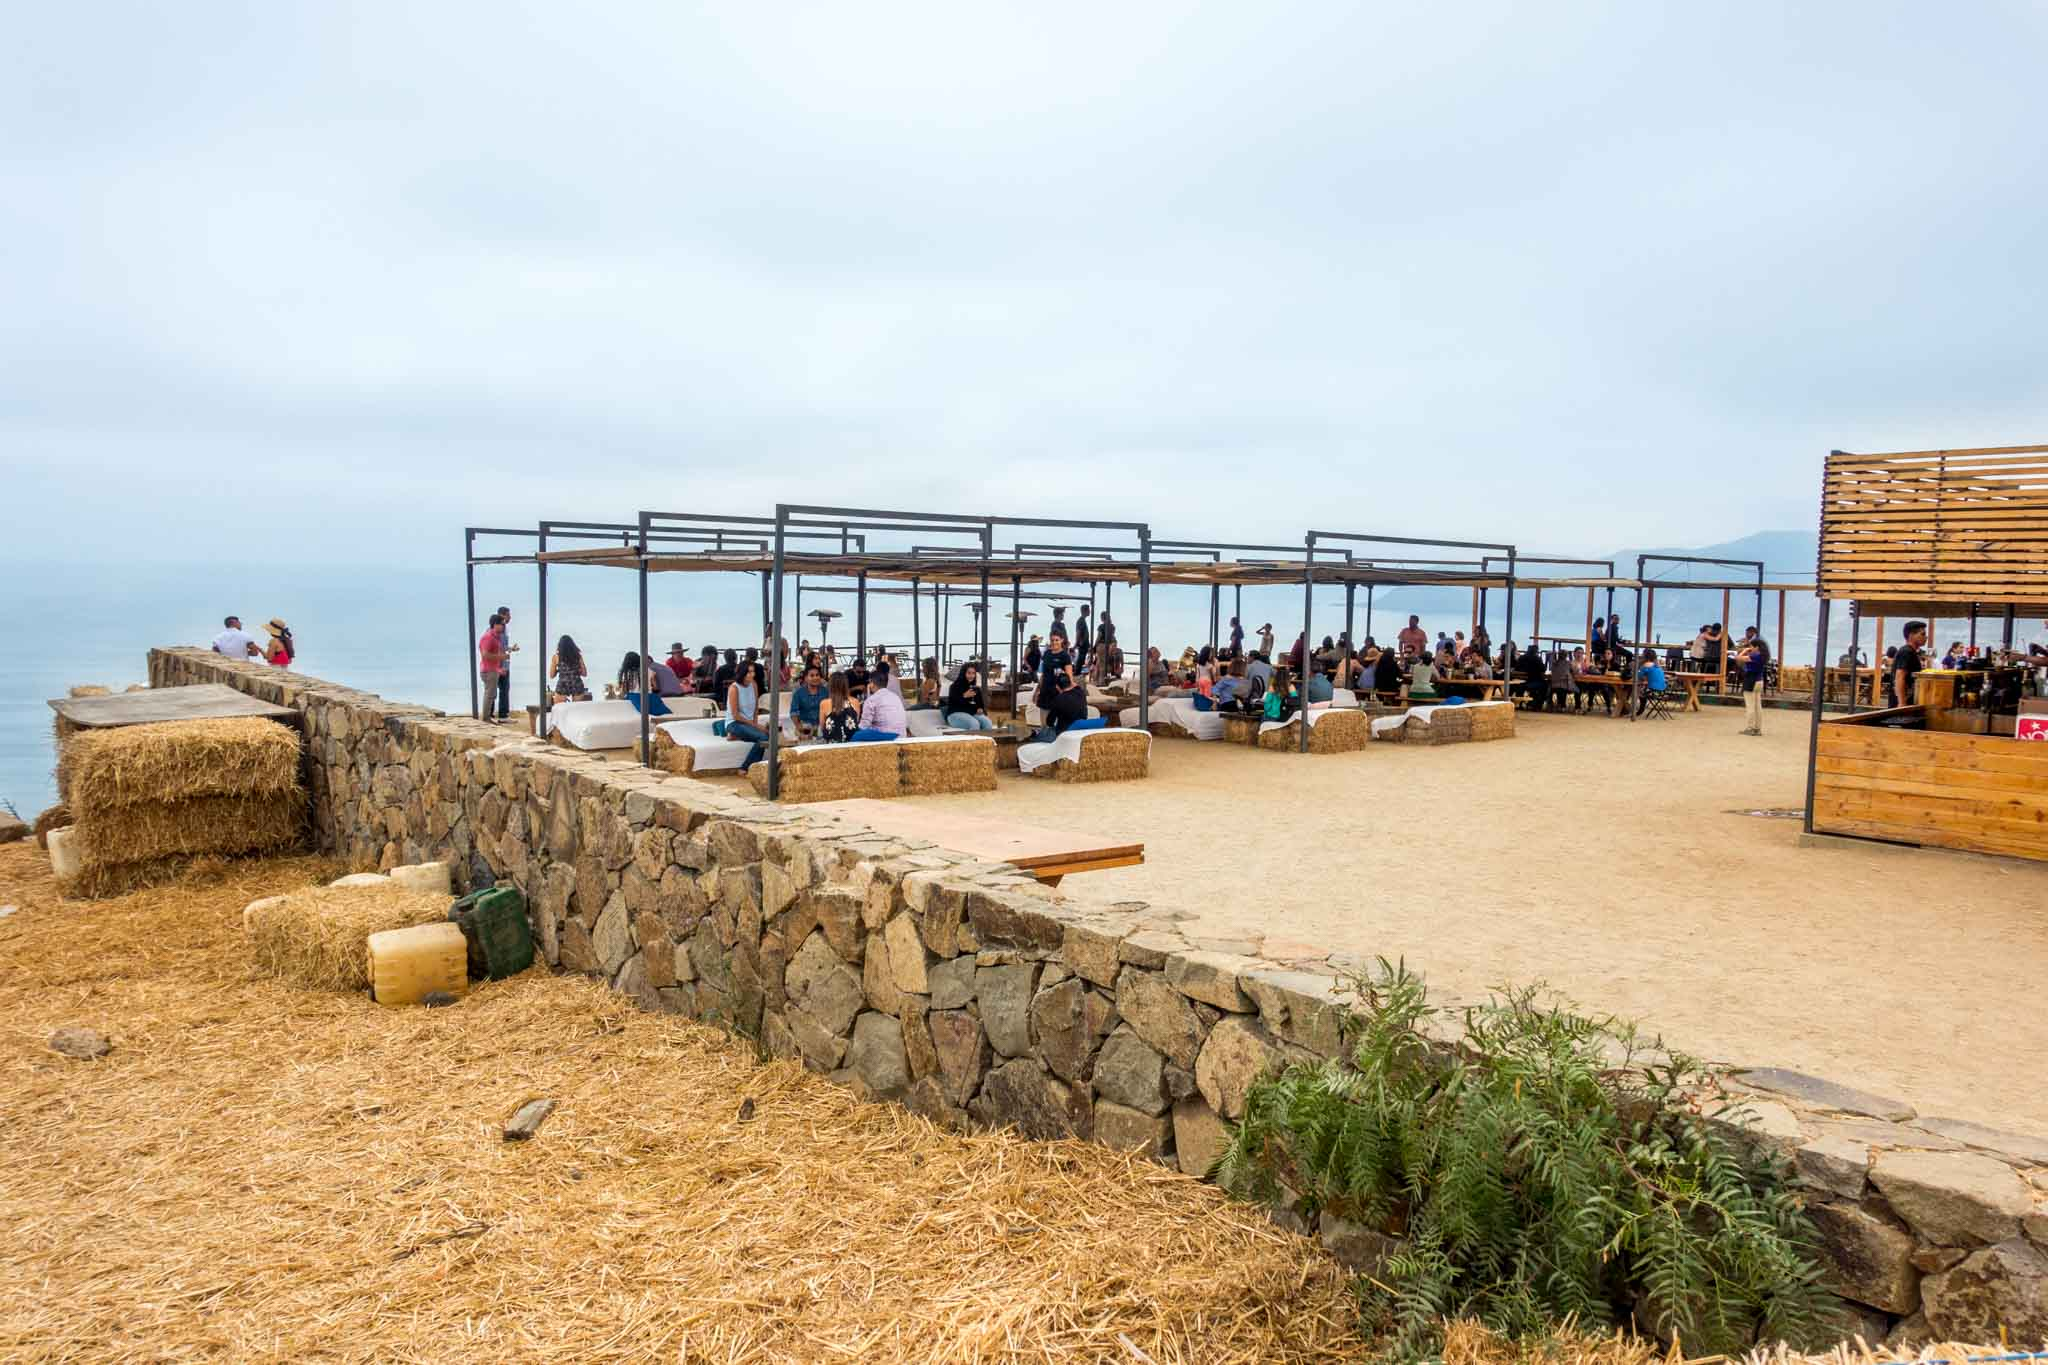 The Baja wineries come in all different shapes and sizes.  This is Bar Bura at Cuatro Cuatros.